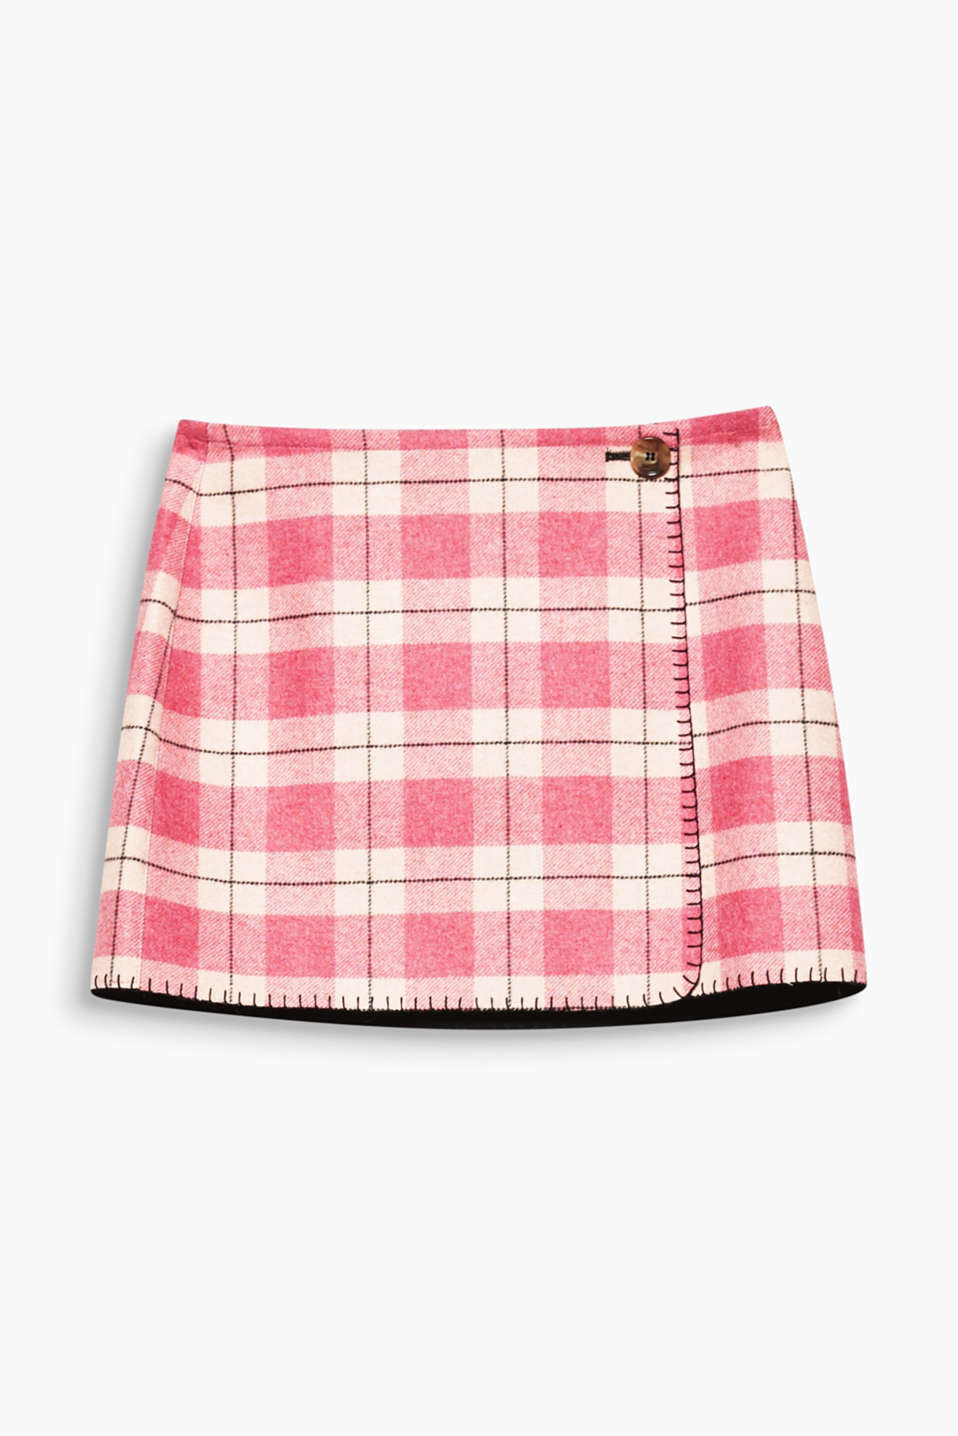 Inspired by iconic Esprit styles from the 80s and 90s: Short wrap-over skirt in blended wool with a stylish check pattern.